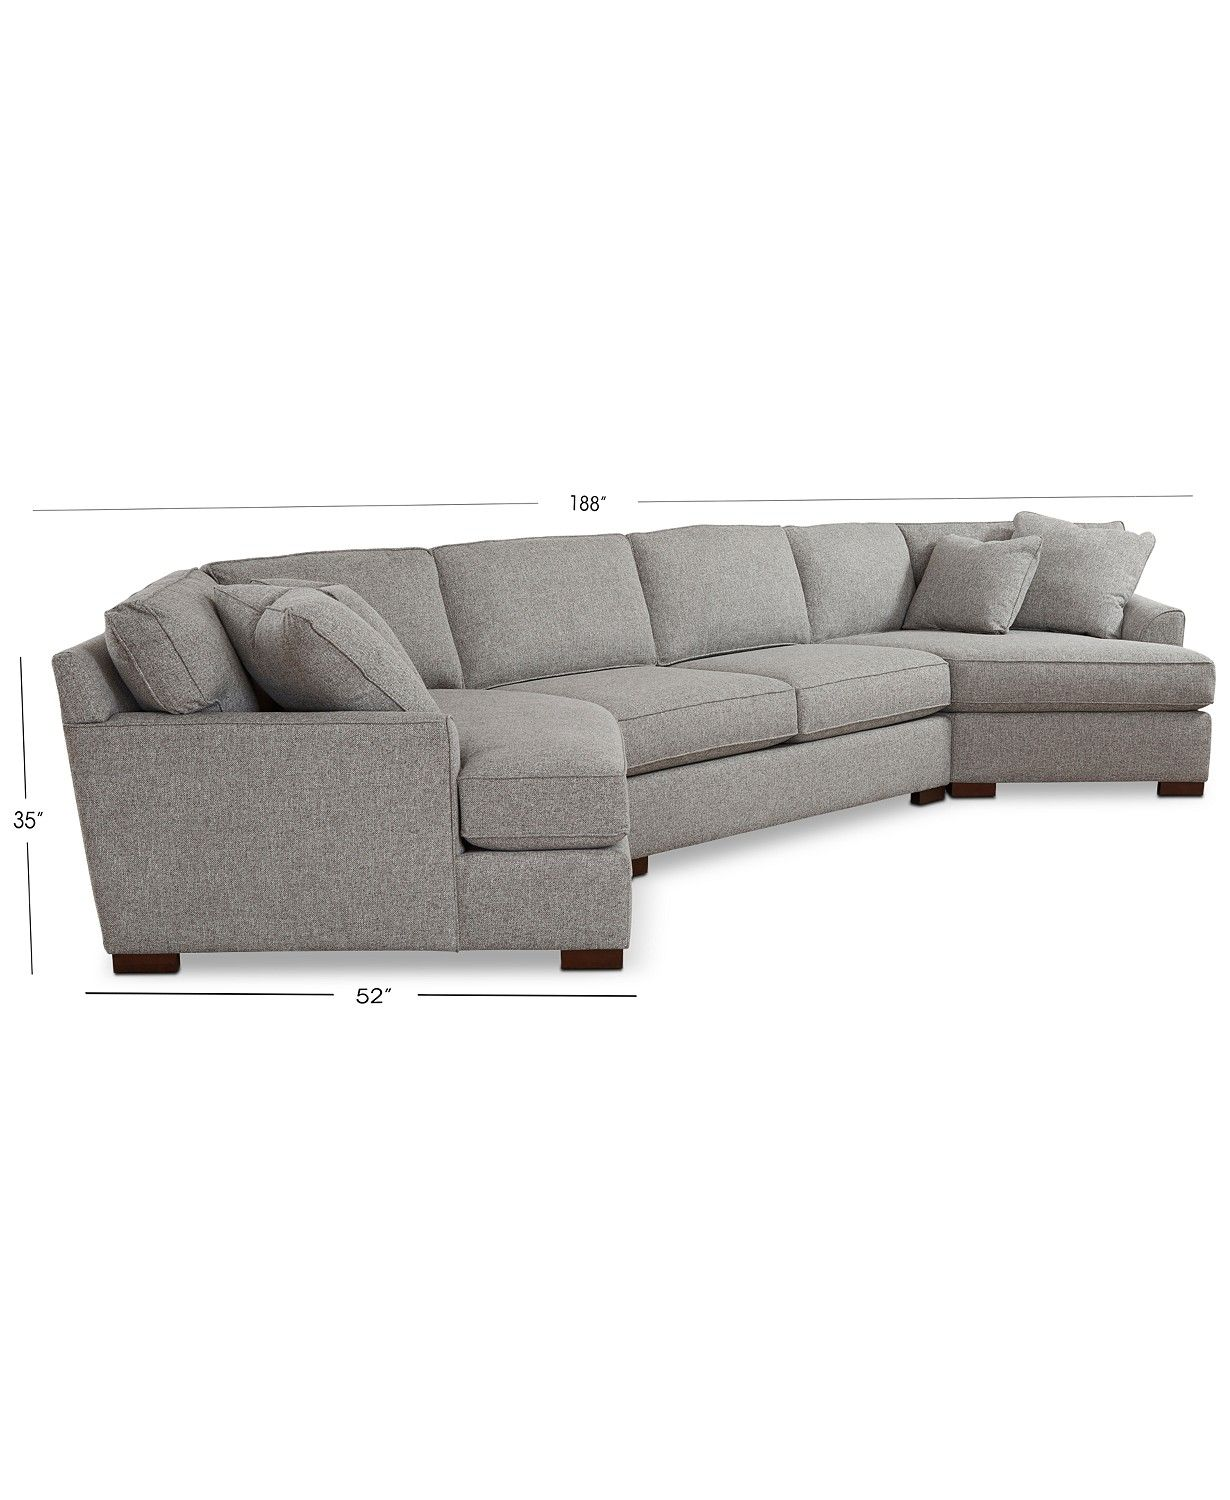 Carena 3 Pc Fabric Sectional With Apartment Sofa And Double Cuddler Chaise Created For Macy S Furniture Macy S Apartment Sofa Furniture Sectional